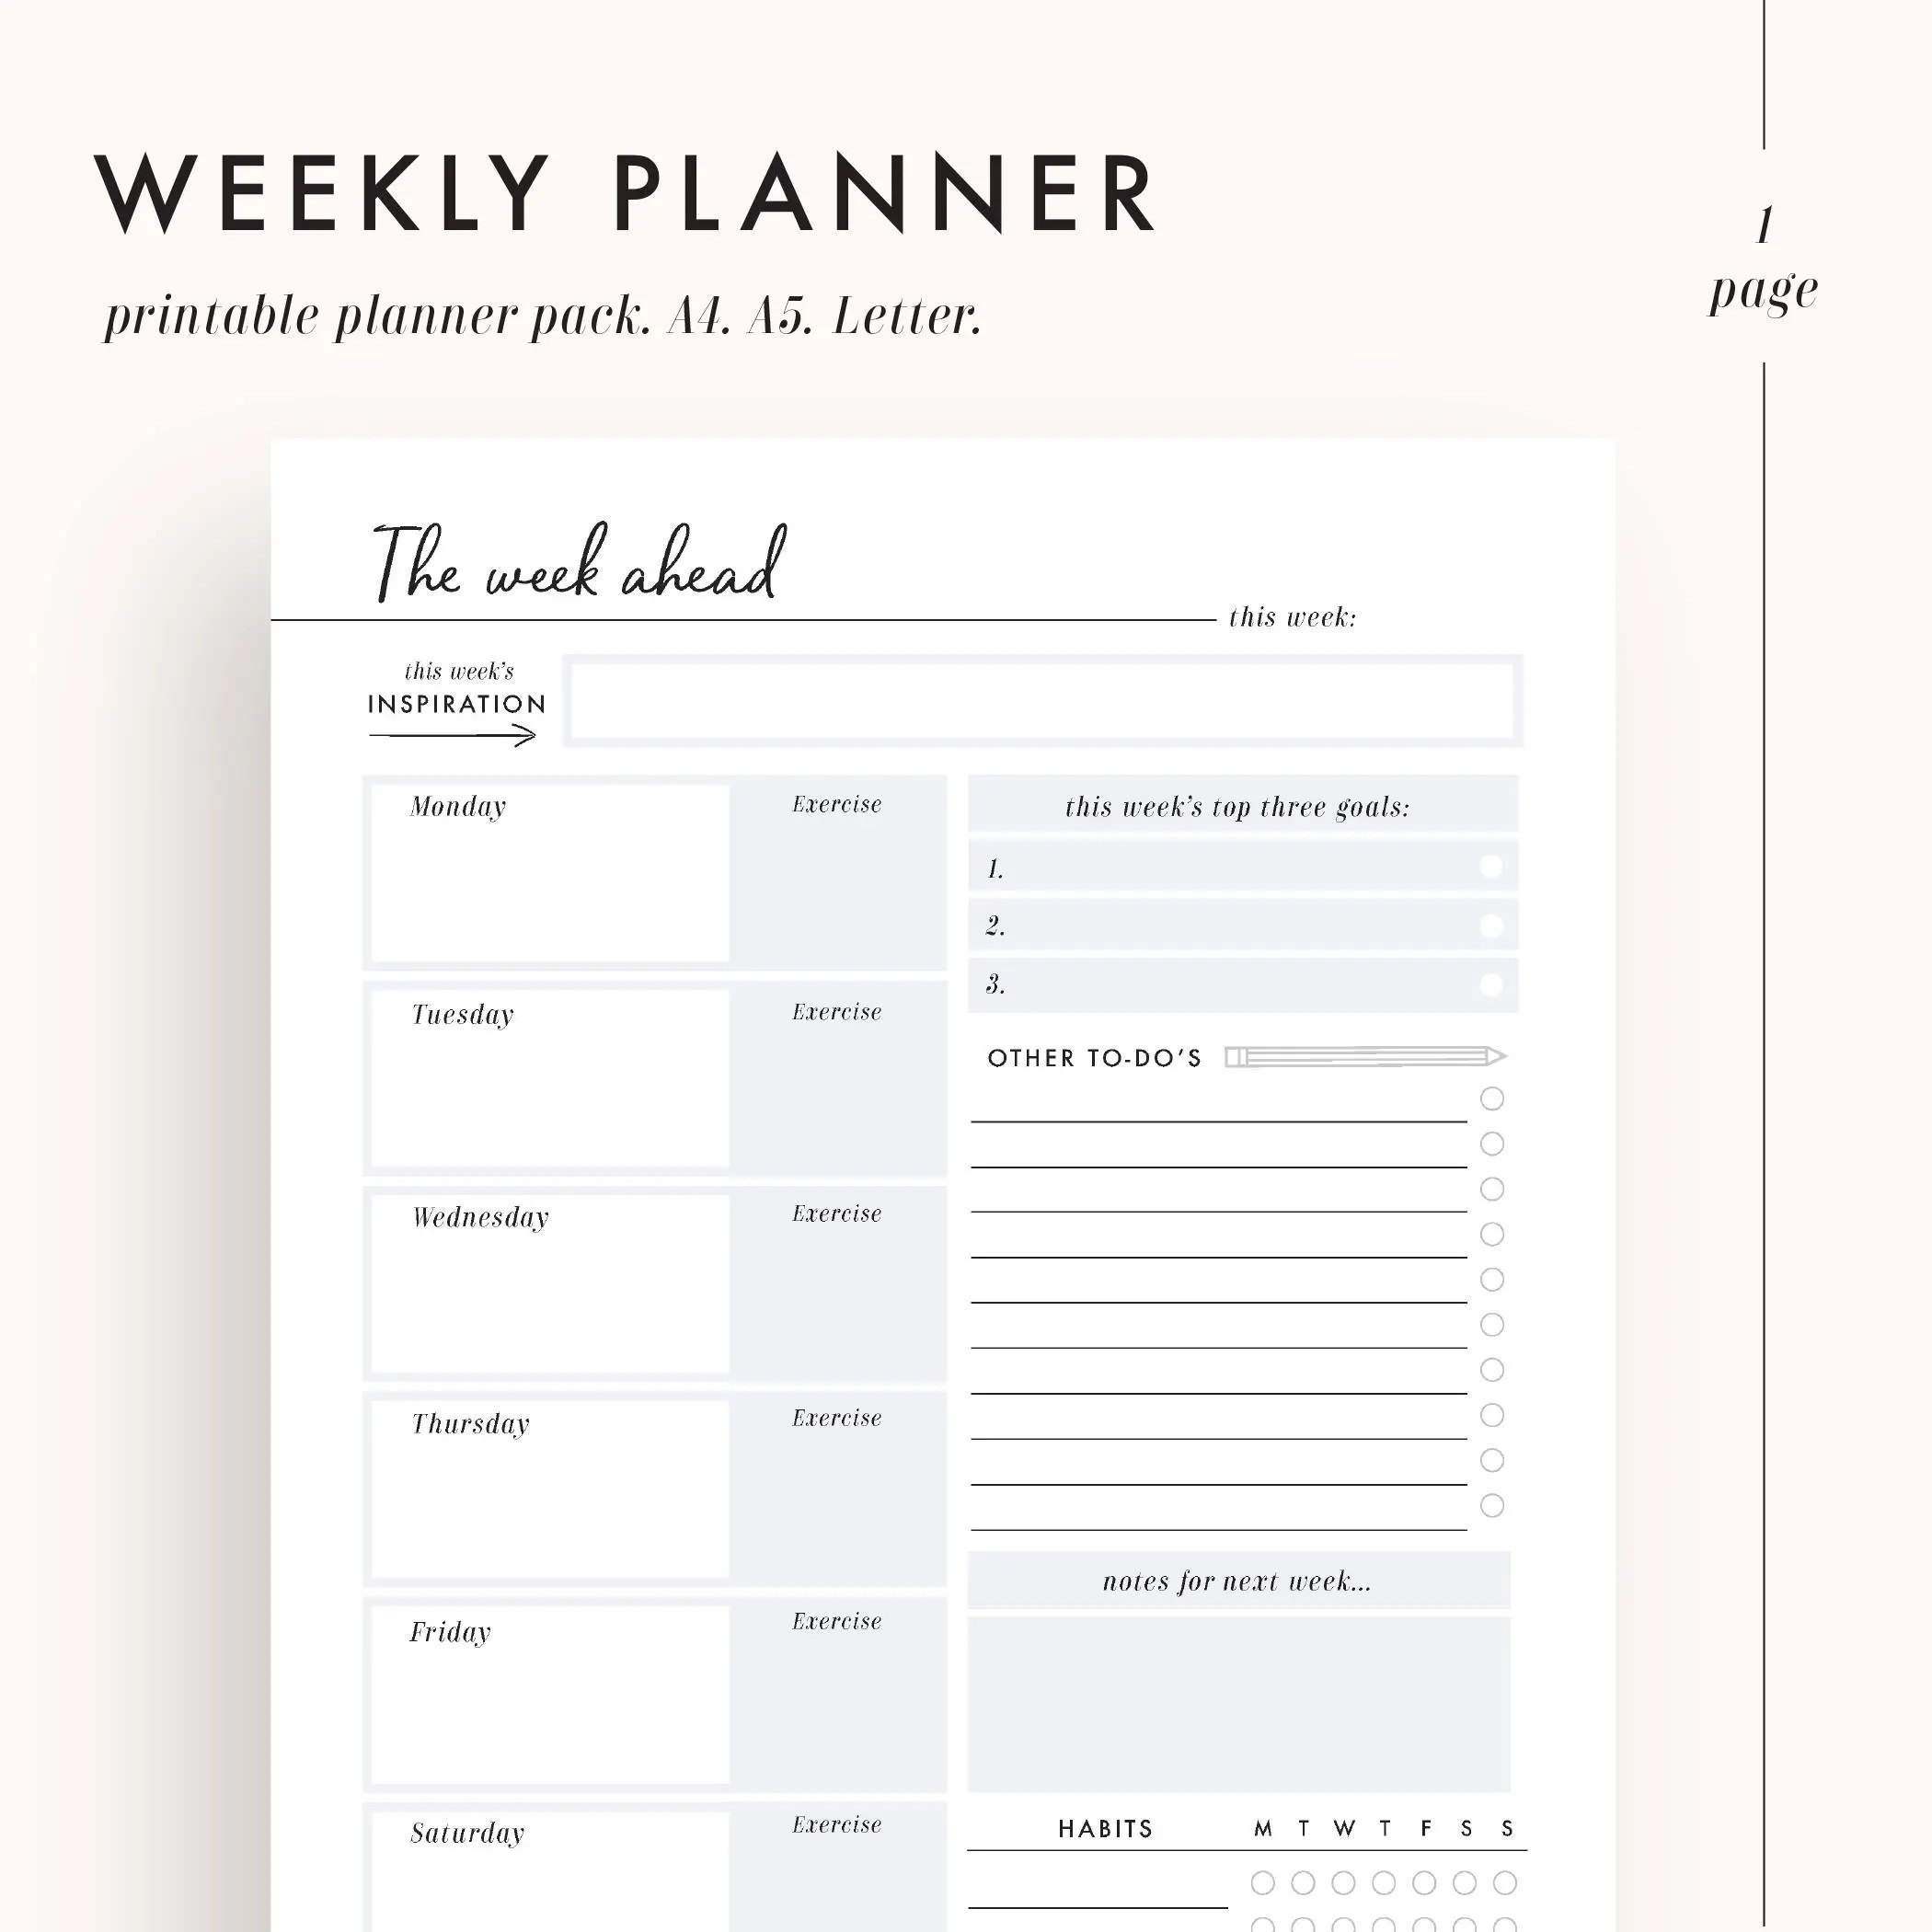 Weekly planner inserts weekly to do list printable planner Etsy